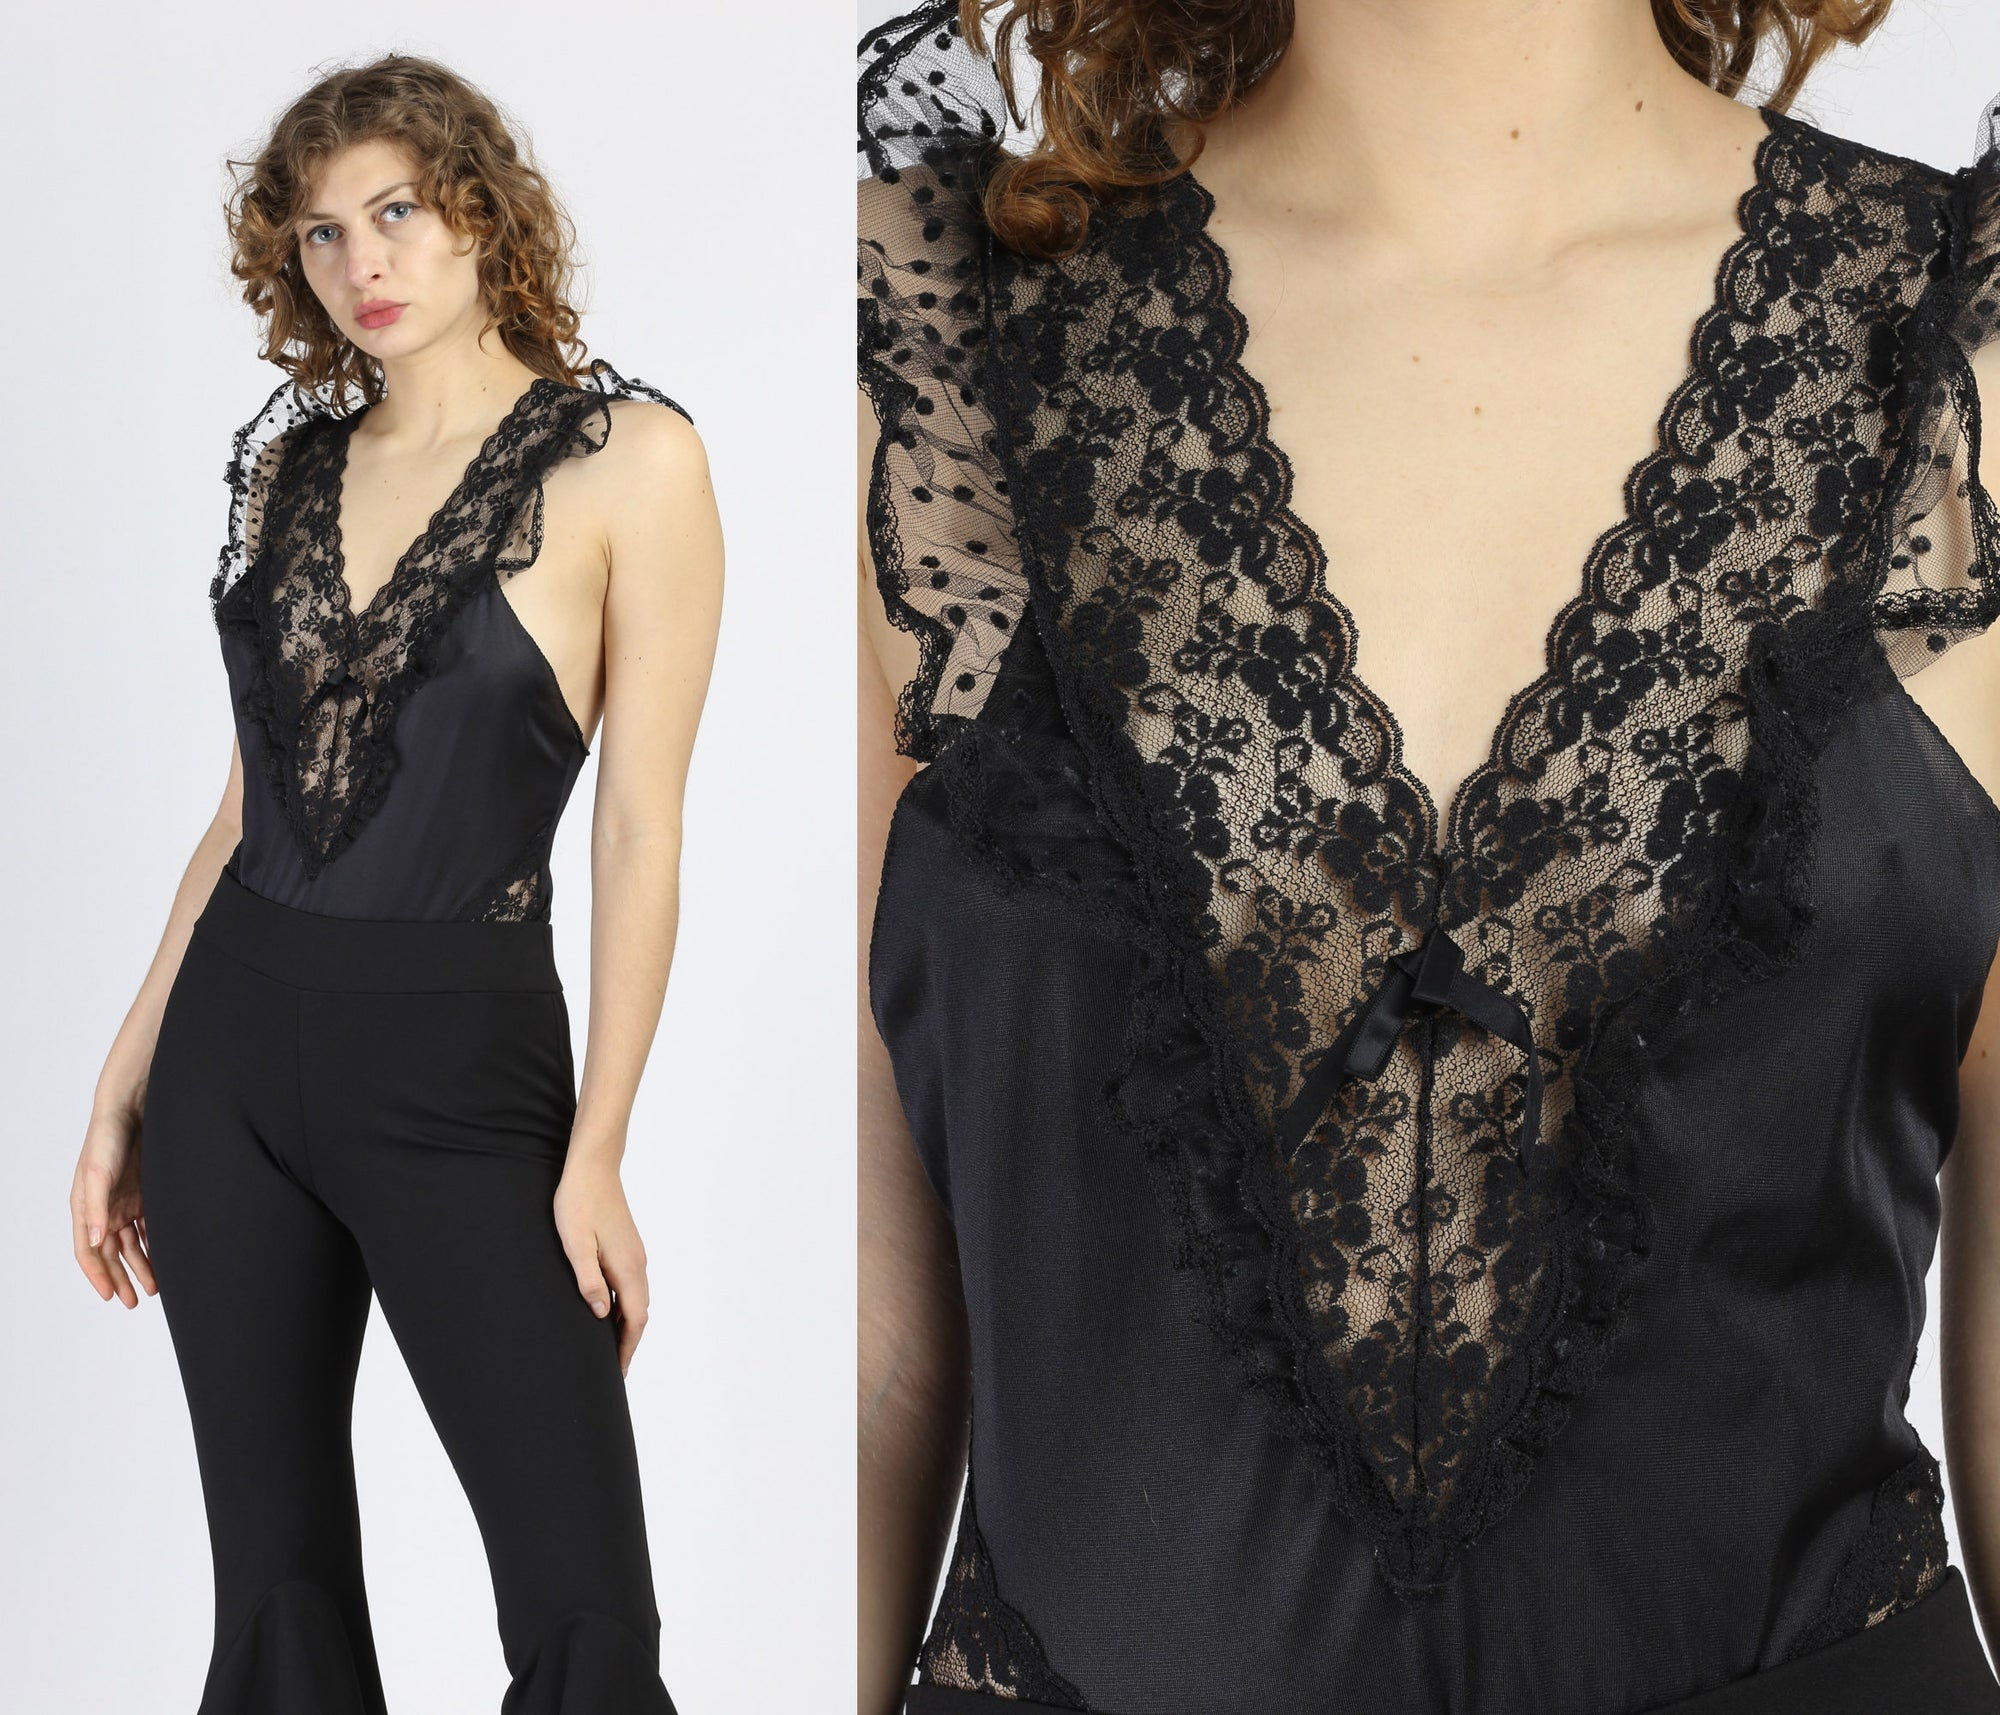 Vintage Black Lace Teddy - Medium